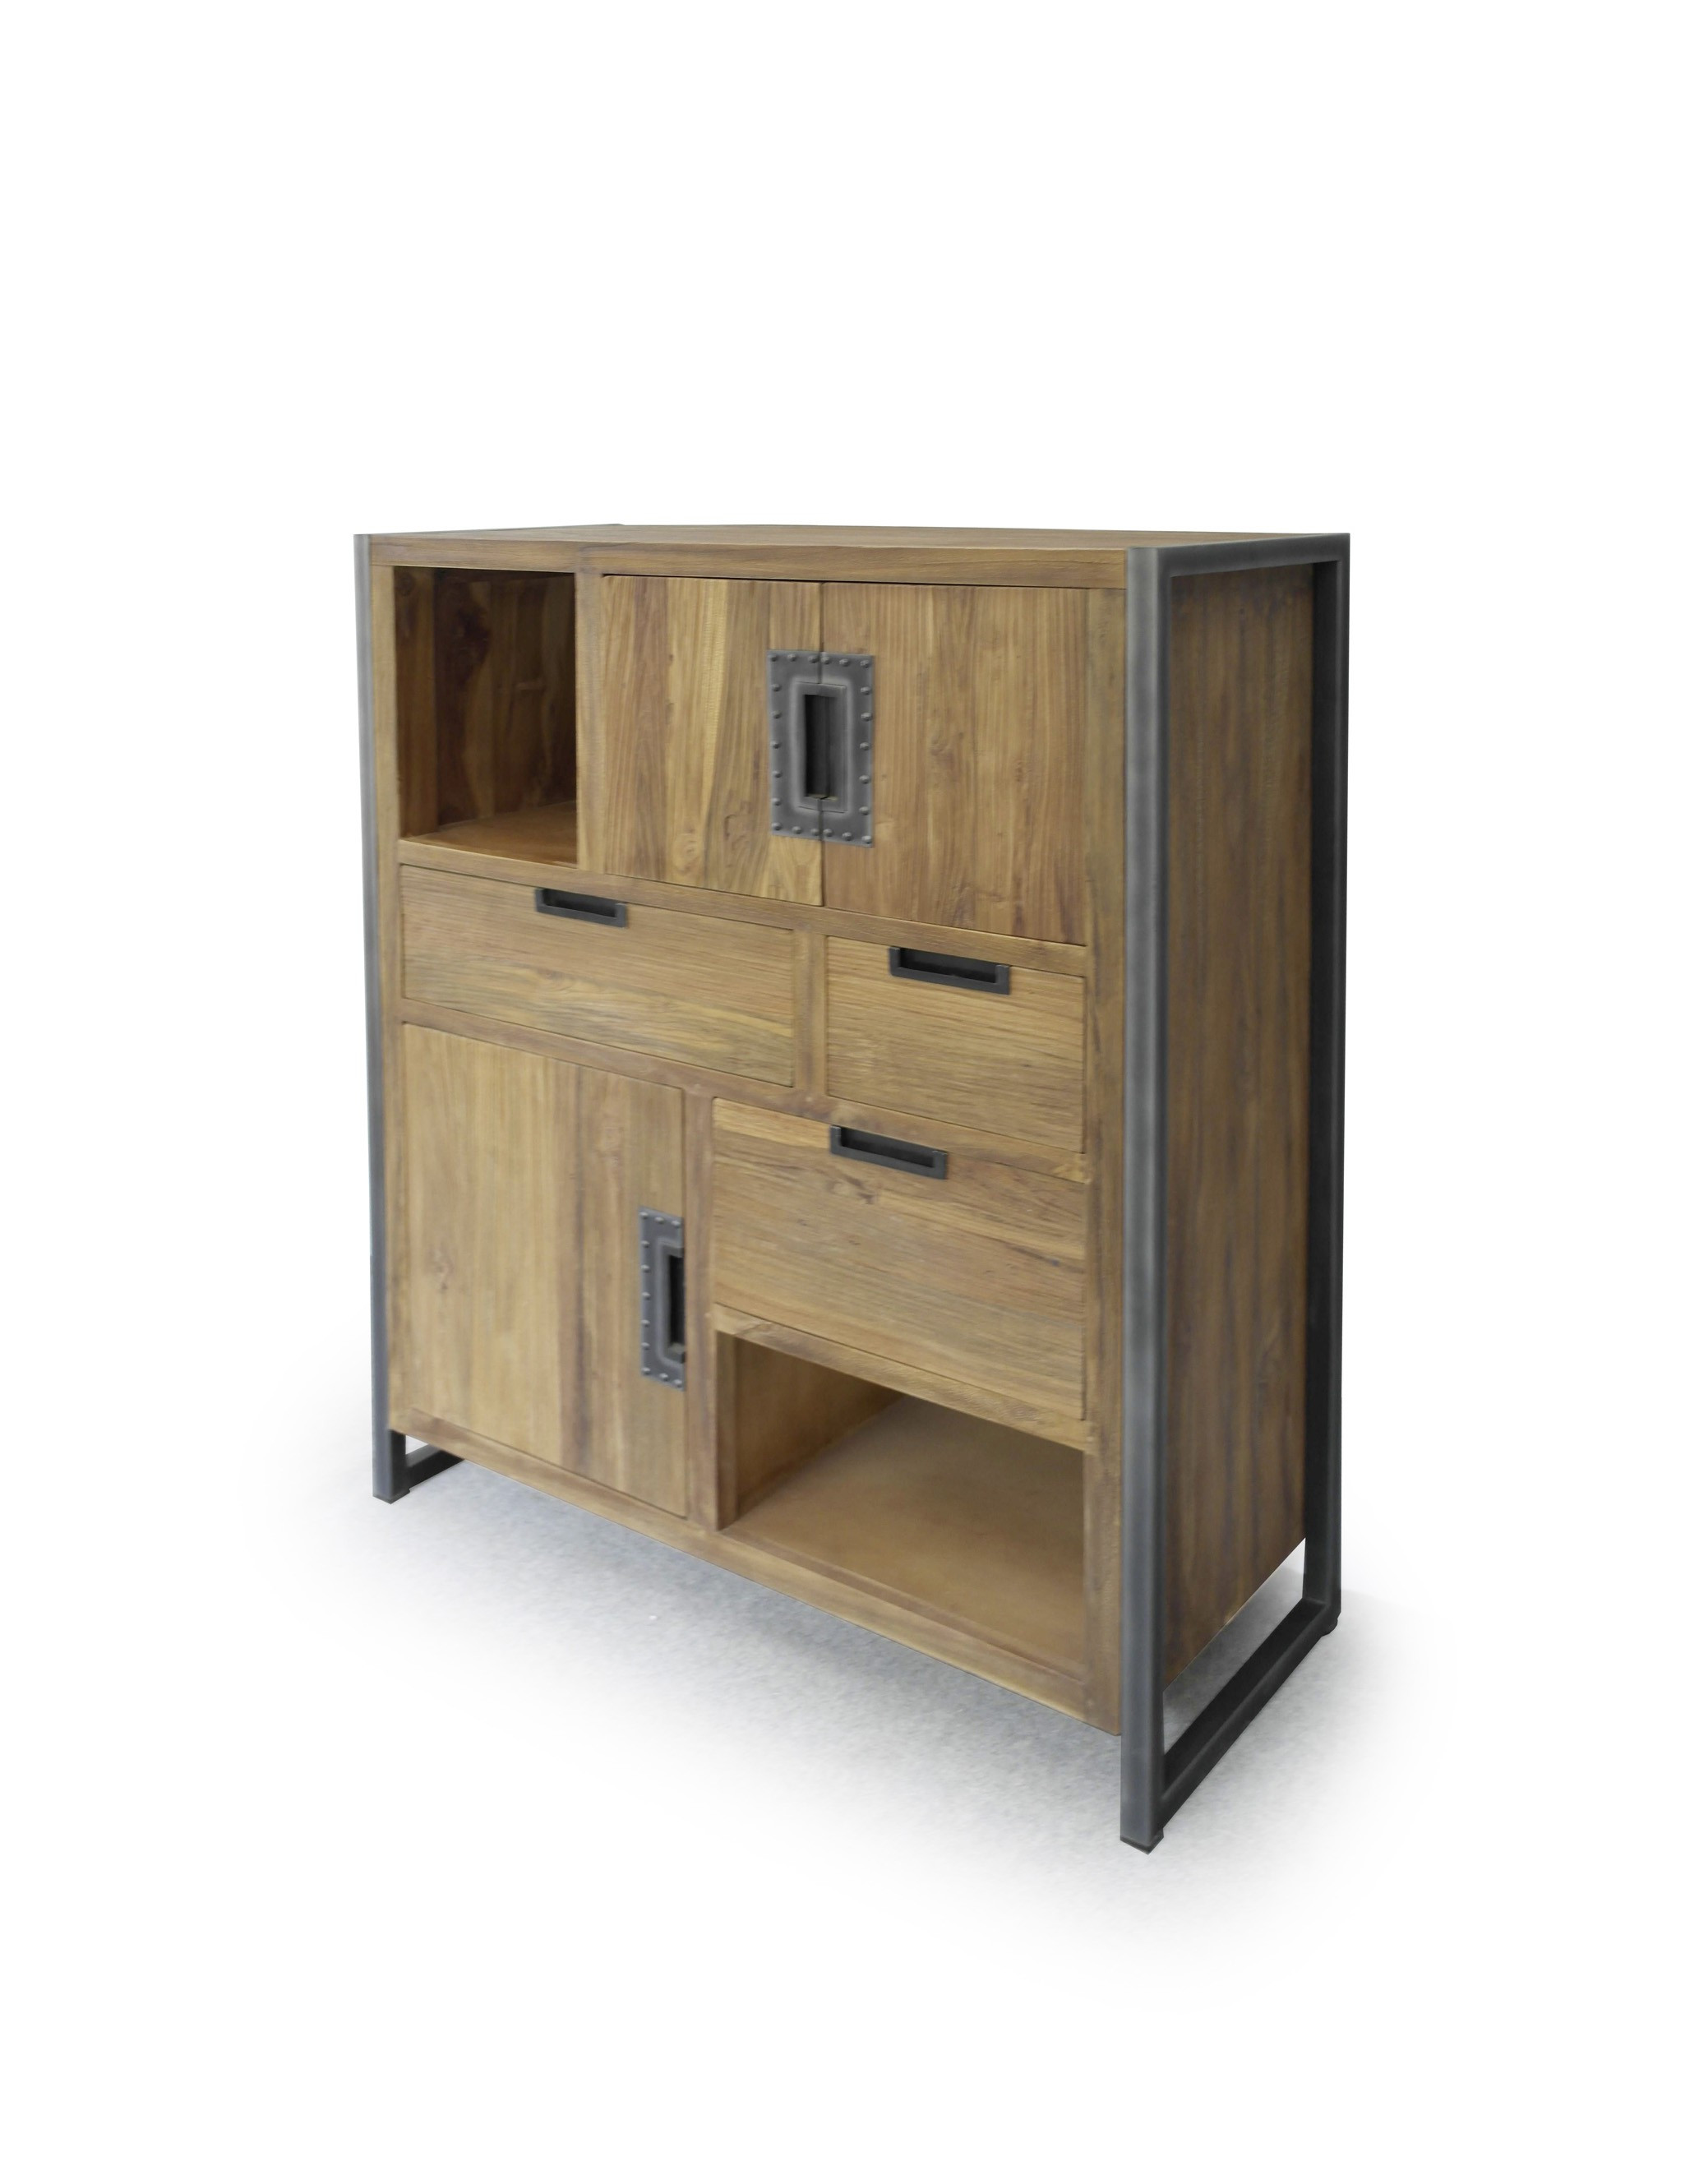 highboard teakholz metall industrial style sumatra. Black Bedroom Furniture Sets. Home Design Ideas